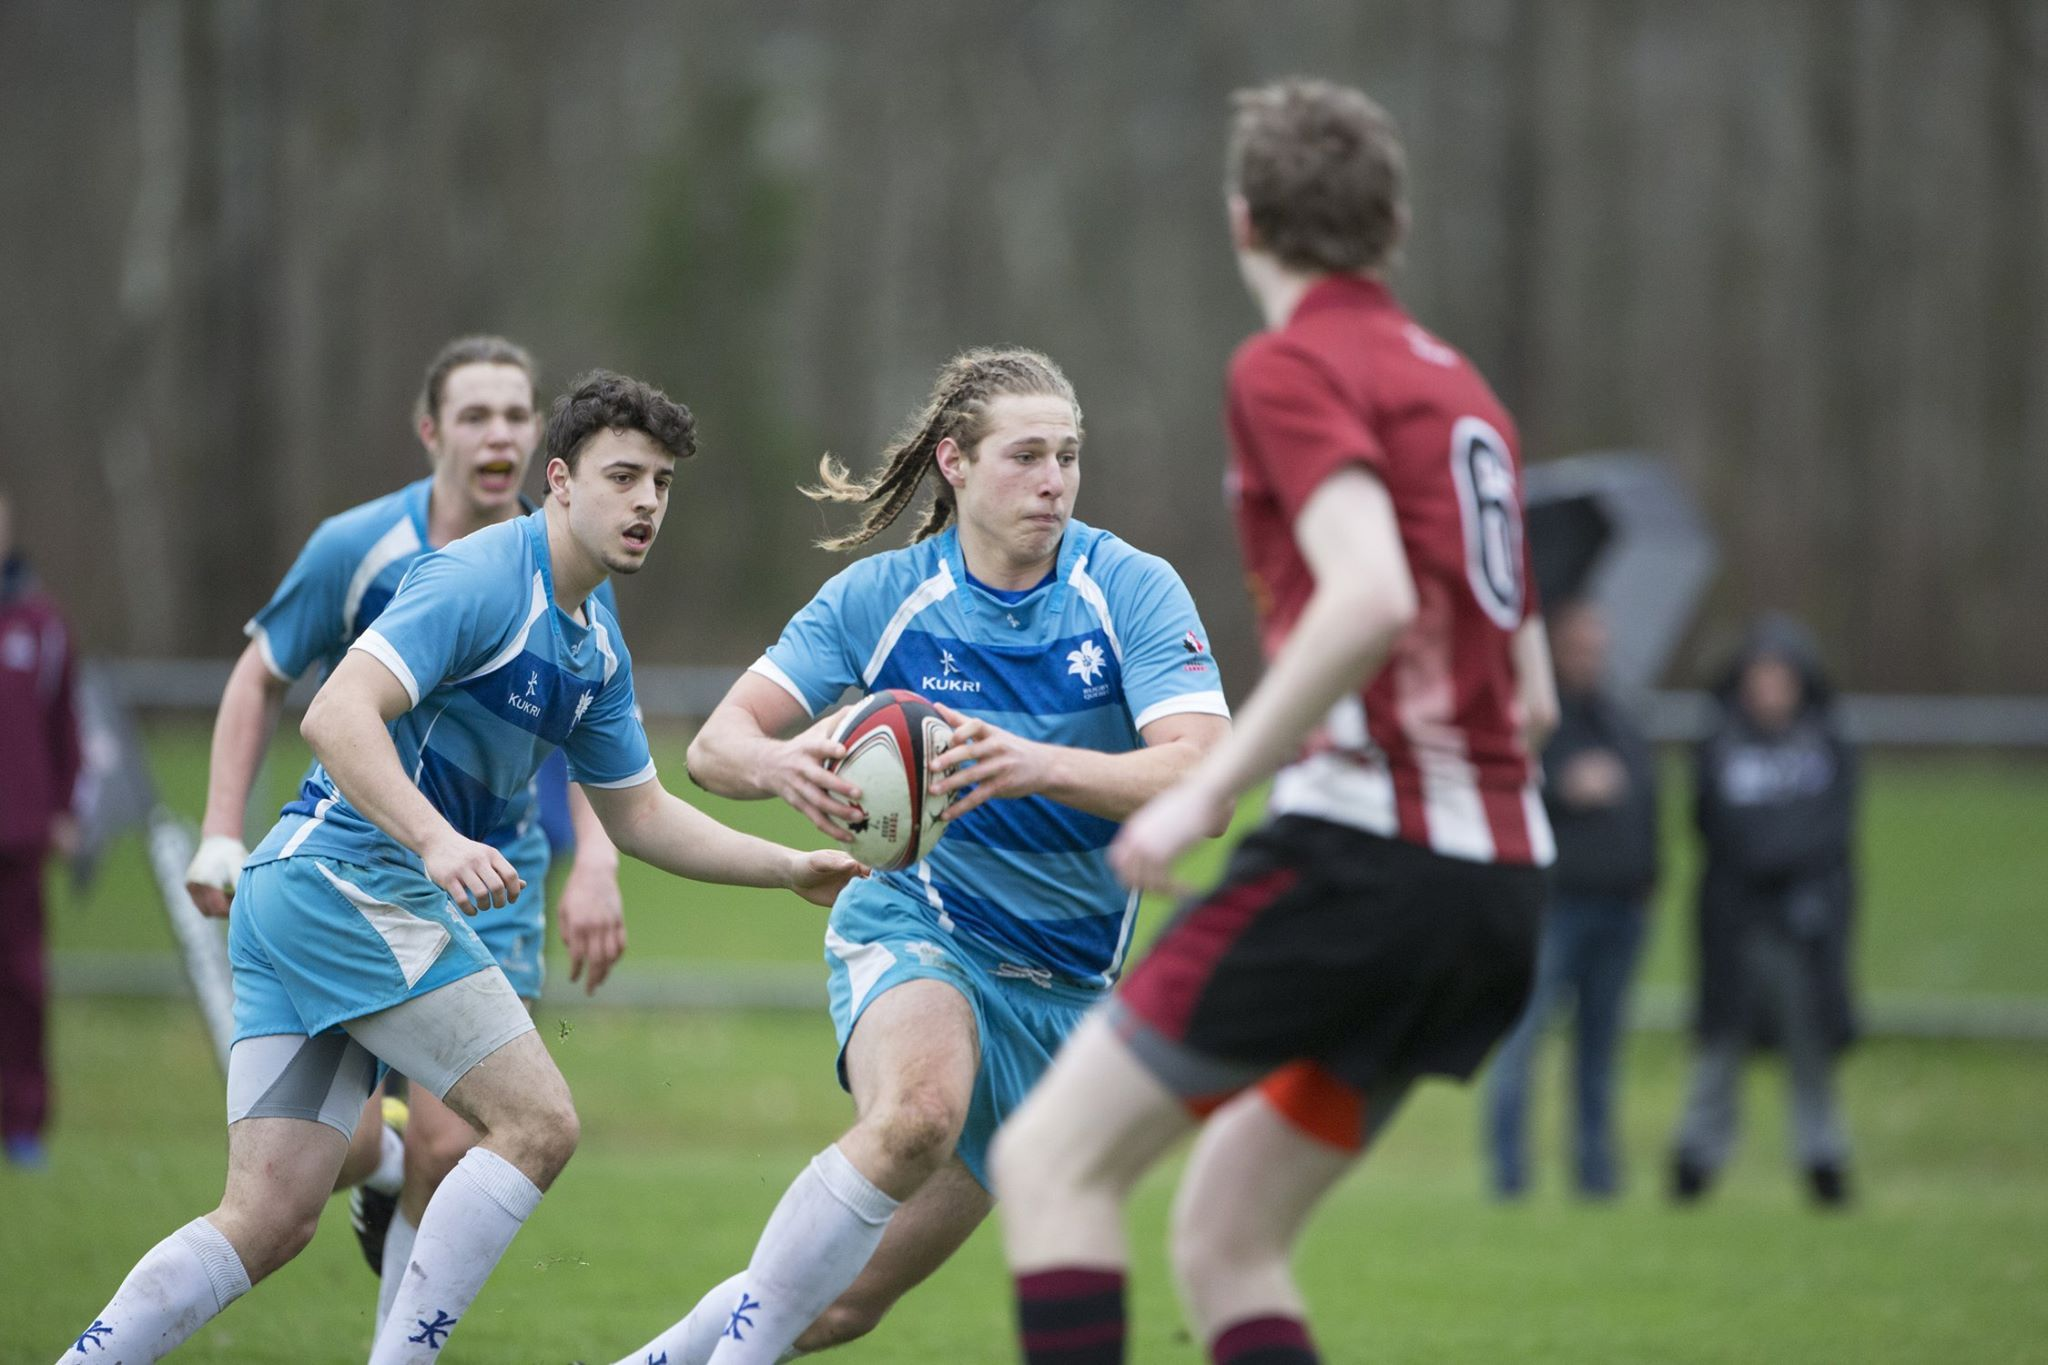 Rugby Canada competing men teams